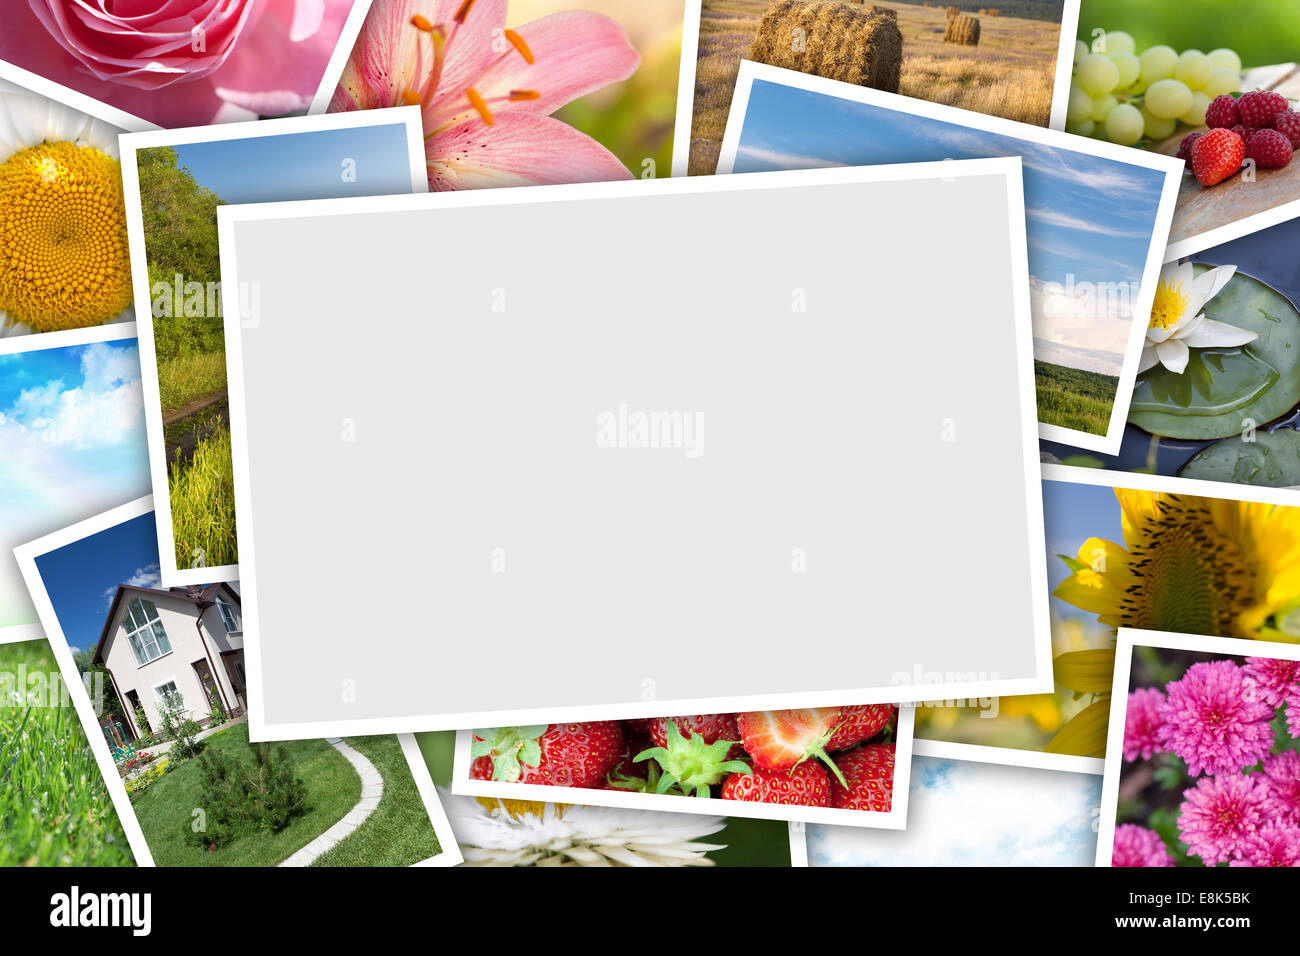 Stack Of Printed Pictures Collage Flowers Stock Photos Stack Of